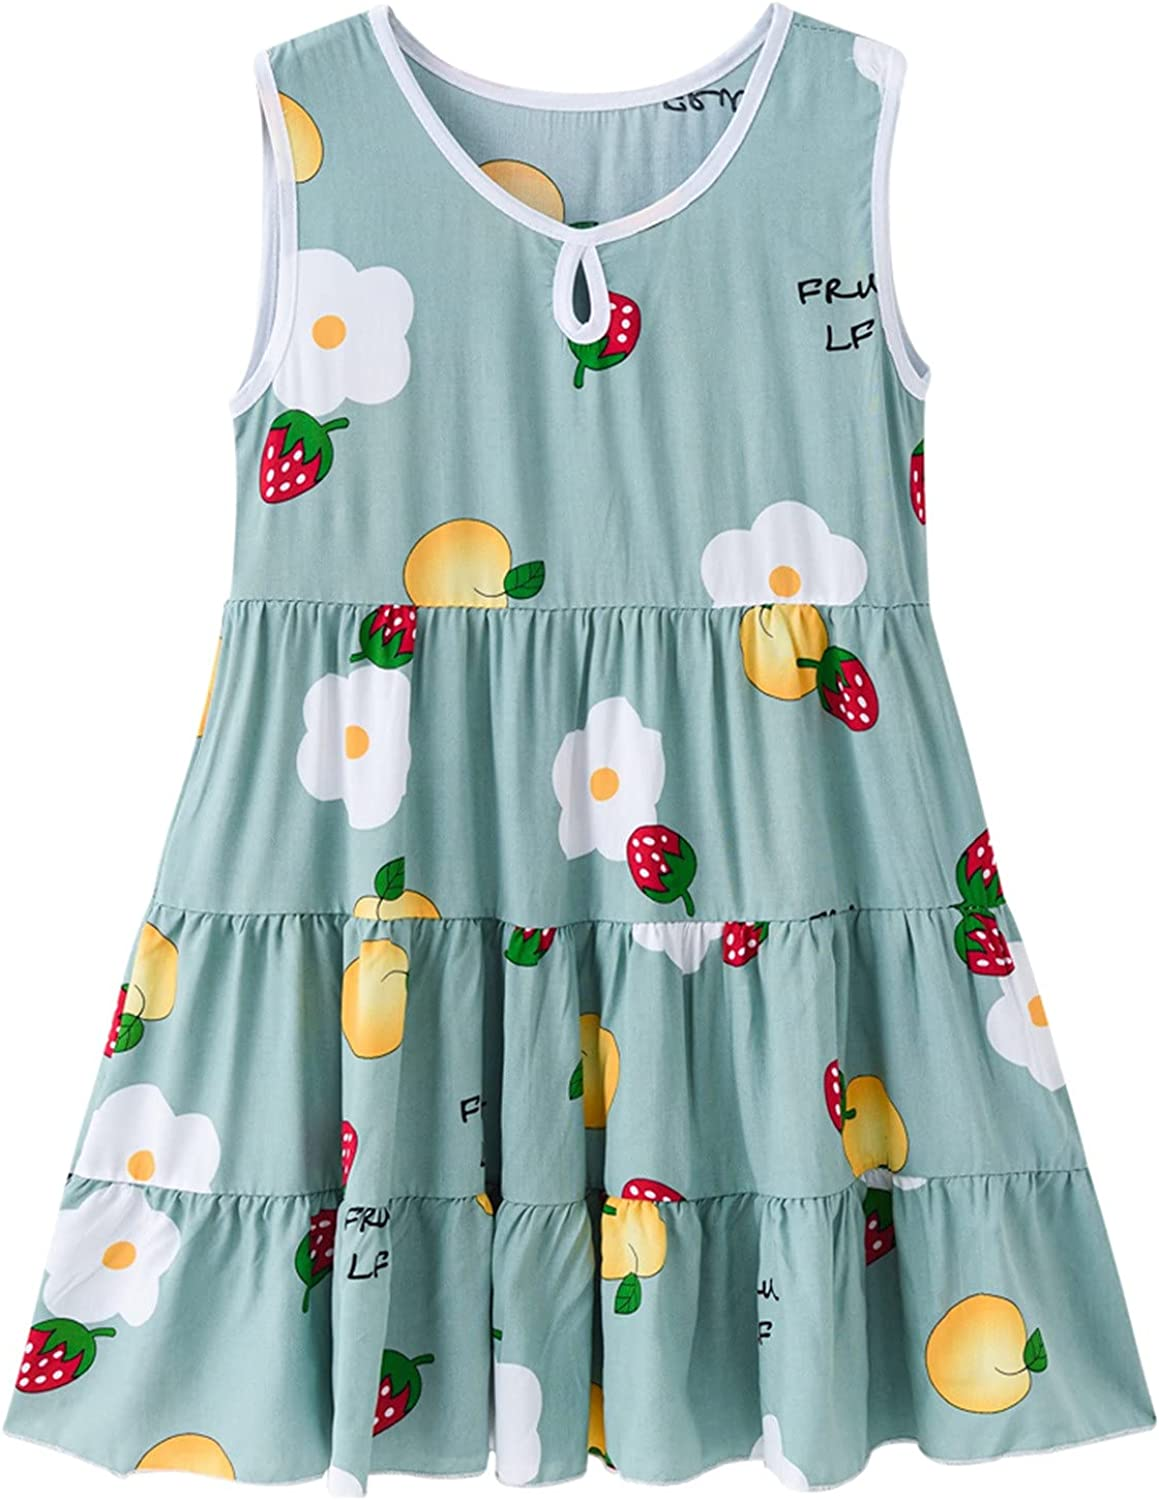 Girls Casual Summer Floral Sleeveless Dress Matching Outfits for Girls 6-12 Years